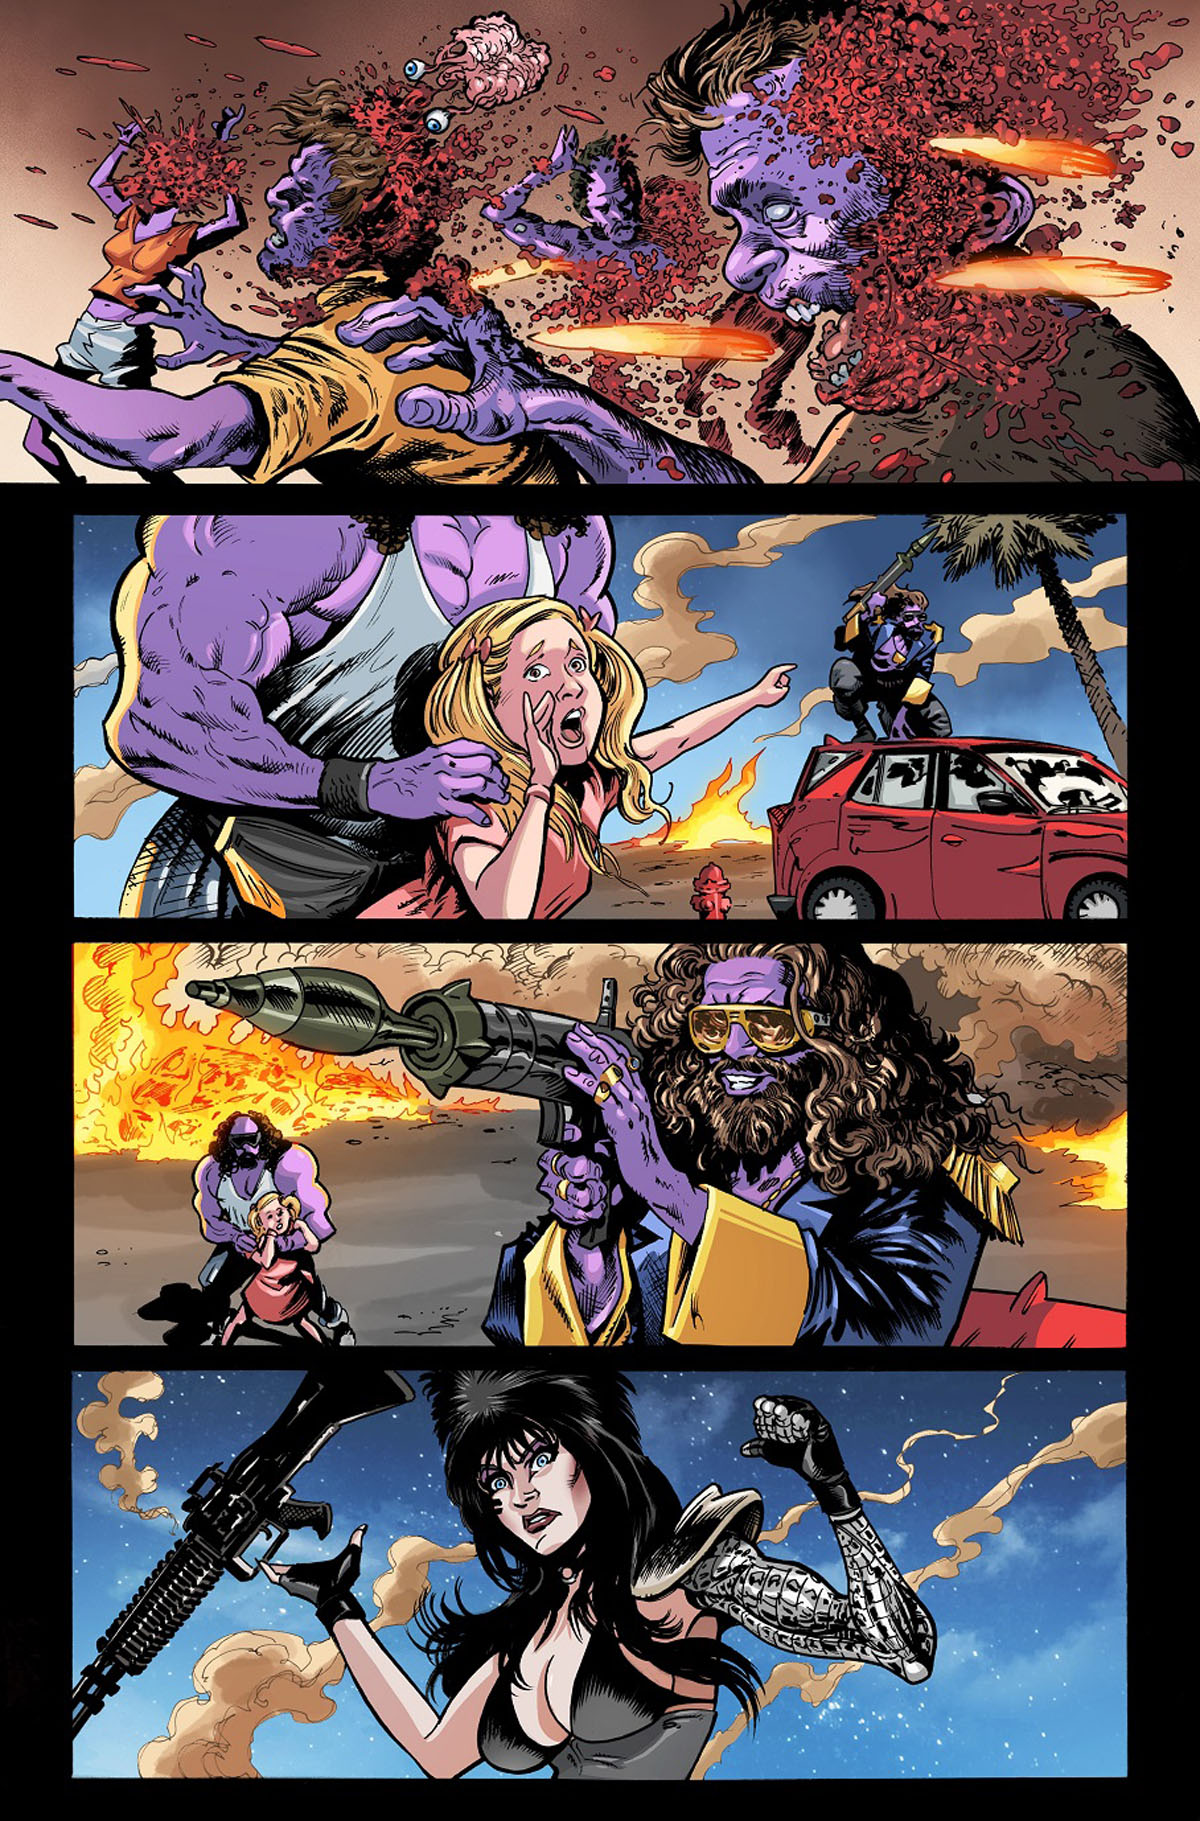 Elvira: The Wrath of Con #1 page 2 by Dave Acosta